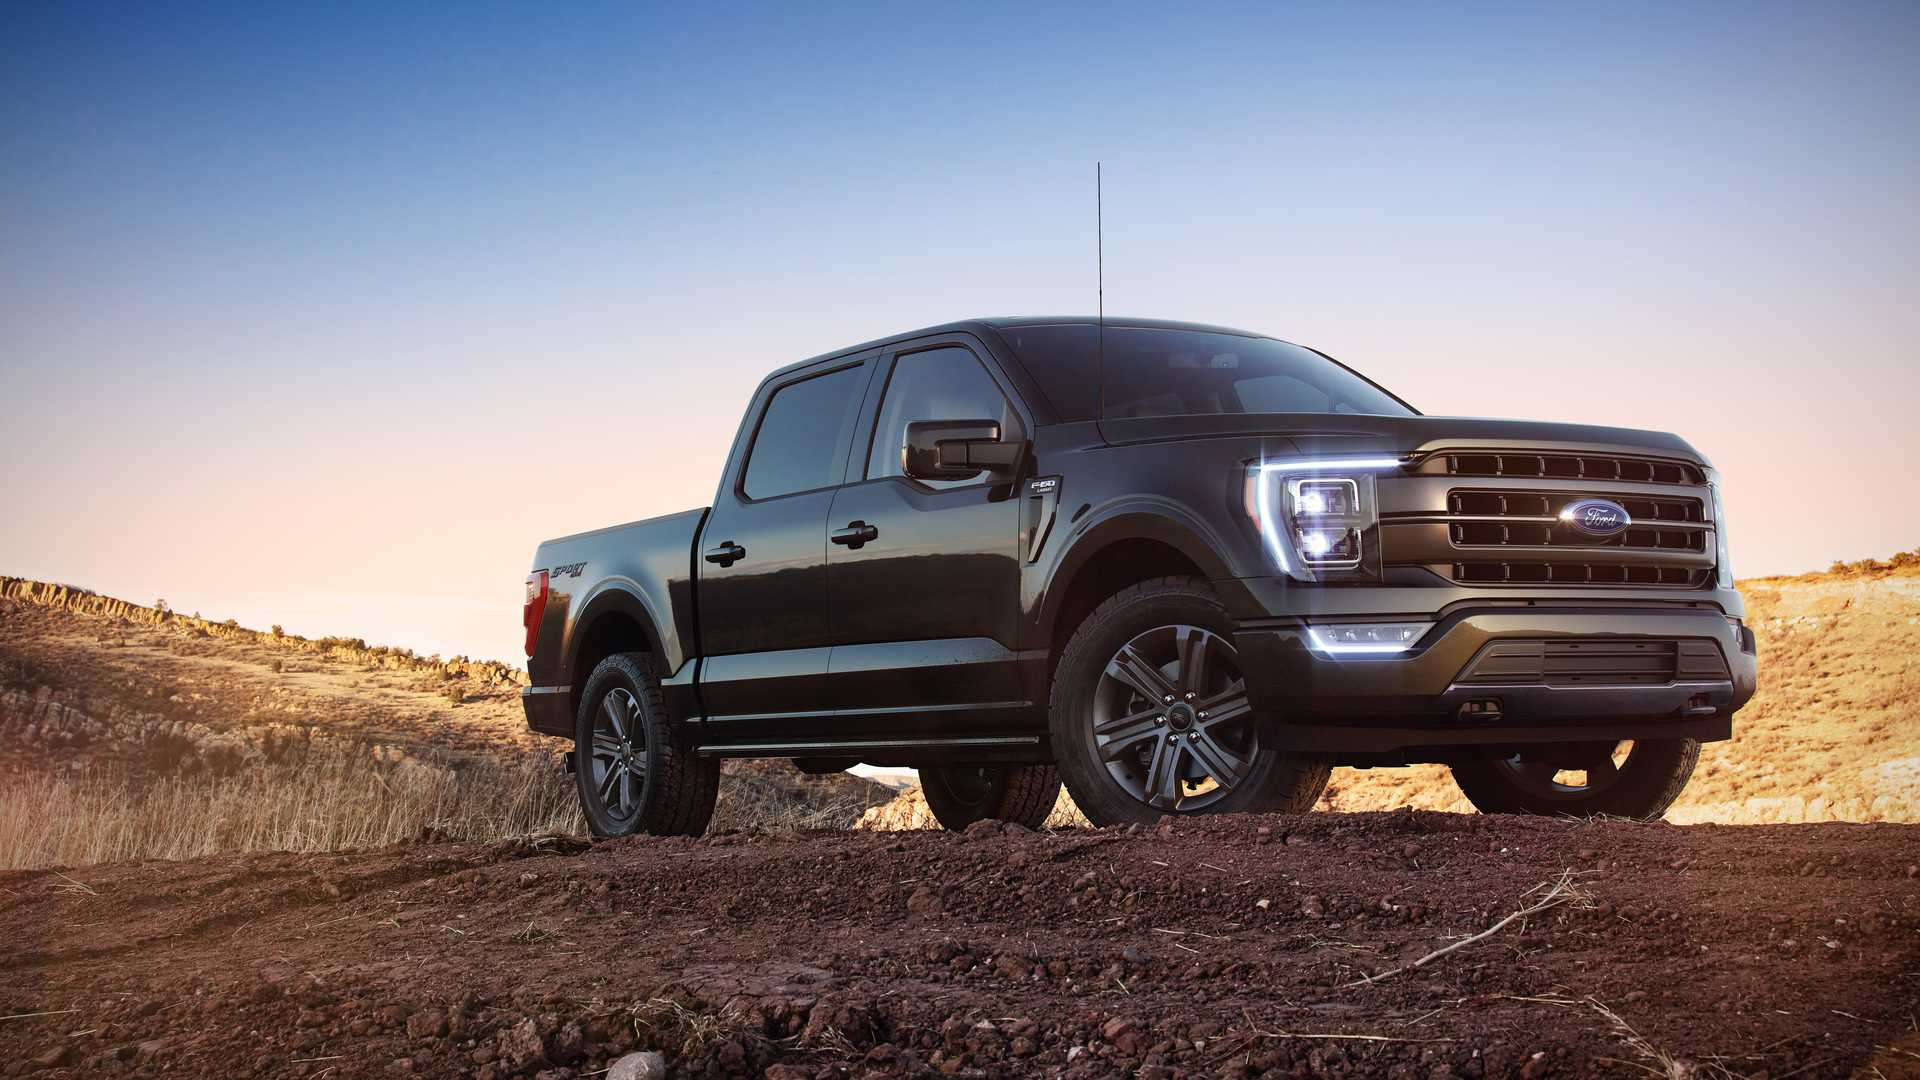 Ford has released the full technical specifications of its fourteenth-gen F-150 range. The best-selling U.S. truck comes with many old engines, some new ones and a very capable hybrid powertrain.